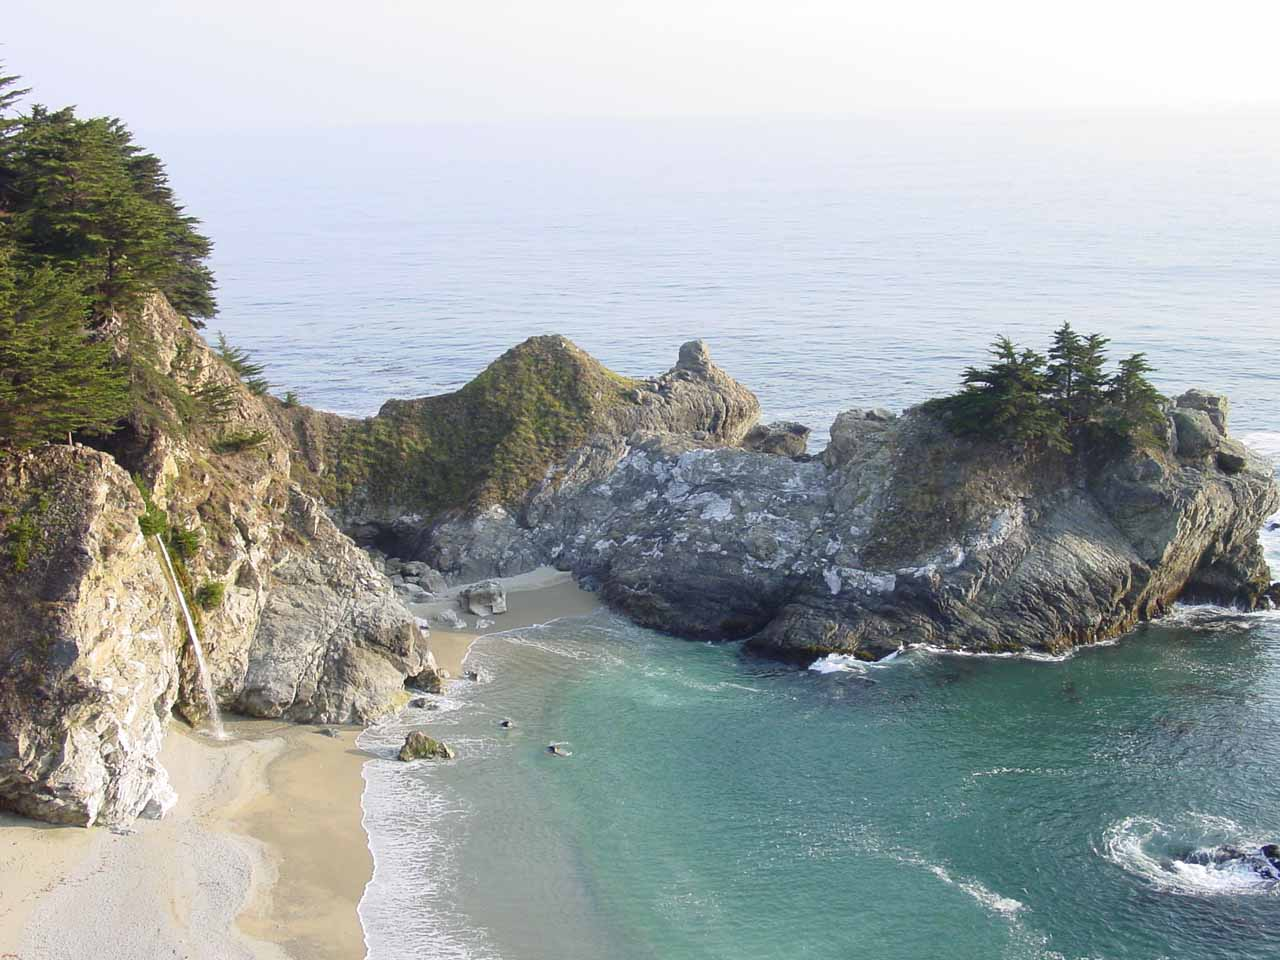 The jaw-dropping beauty of the scenically located McWay Falls